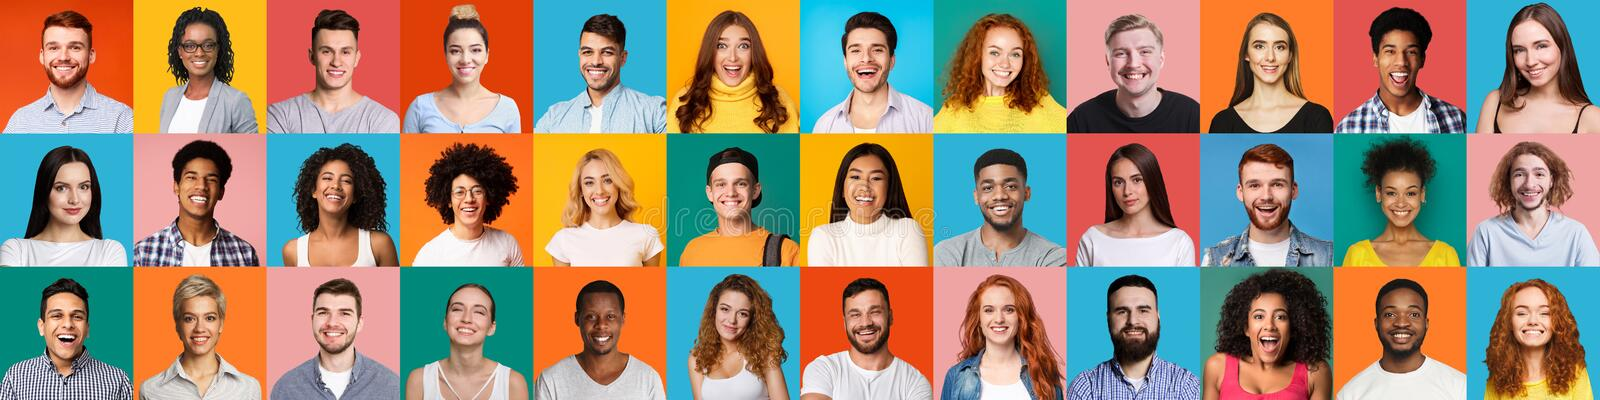 Collage of portraits of Multiethnic happy people royalty free stock image